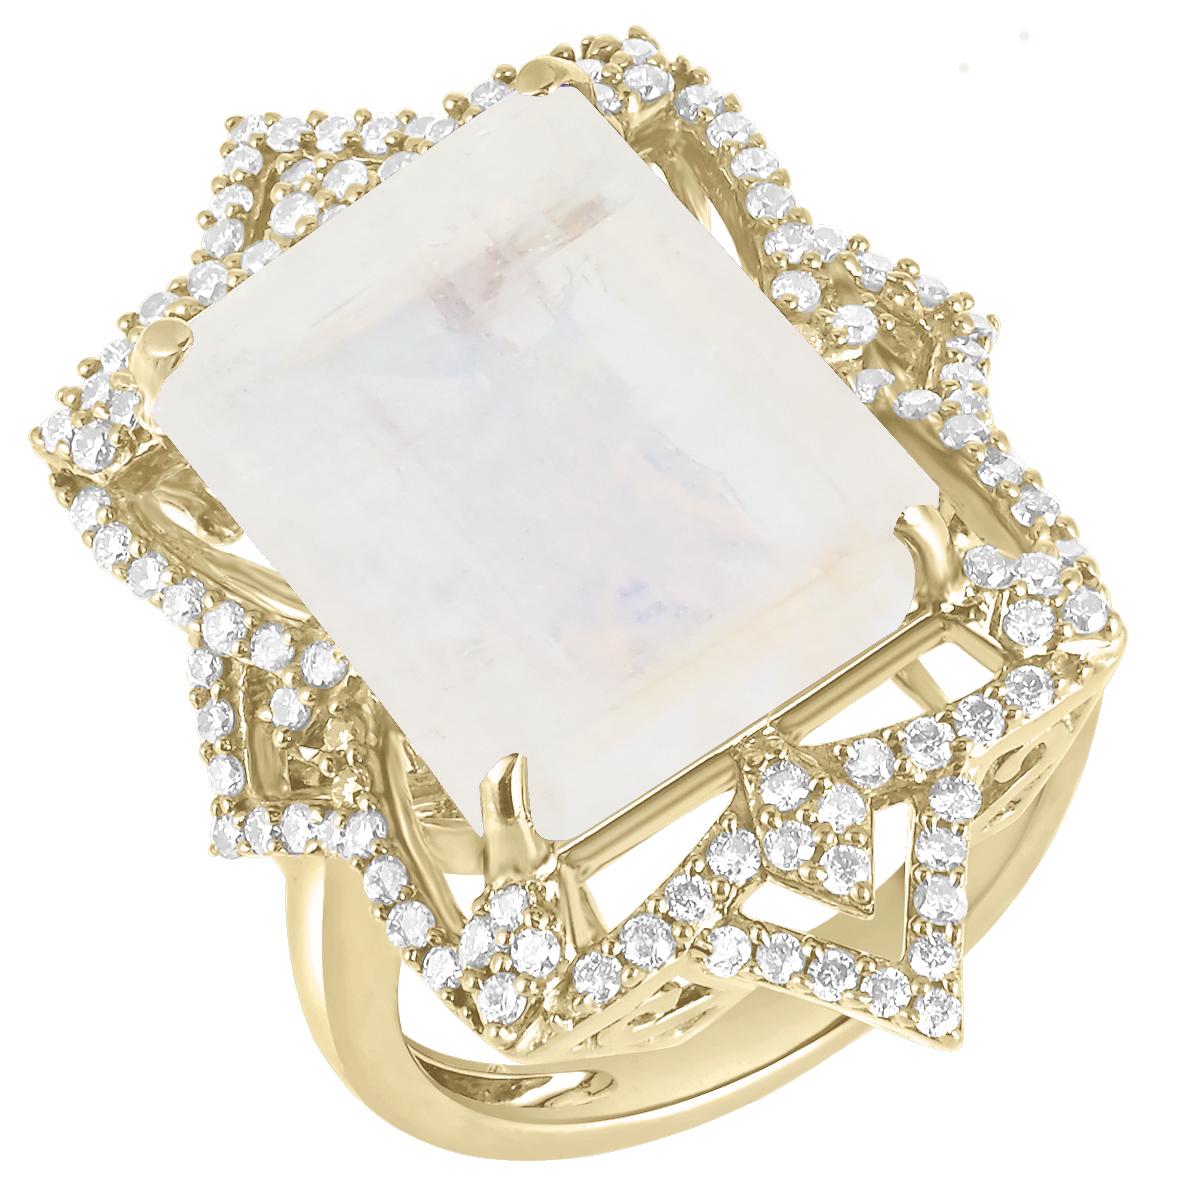 Arya Esha Galaxy Vira rainbow moonstone ring | JCK On Your Market